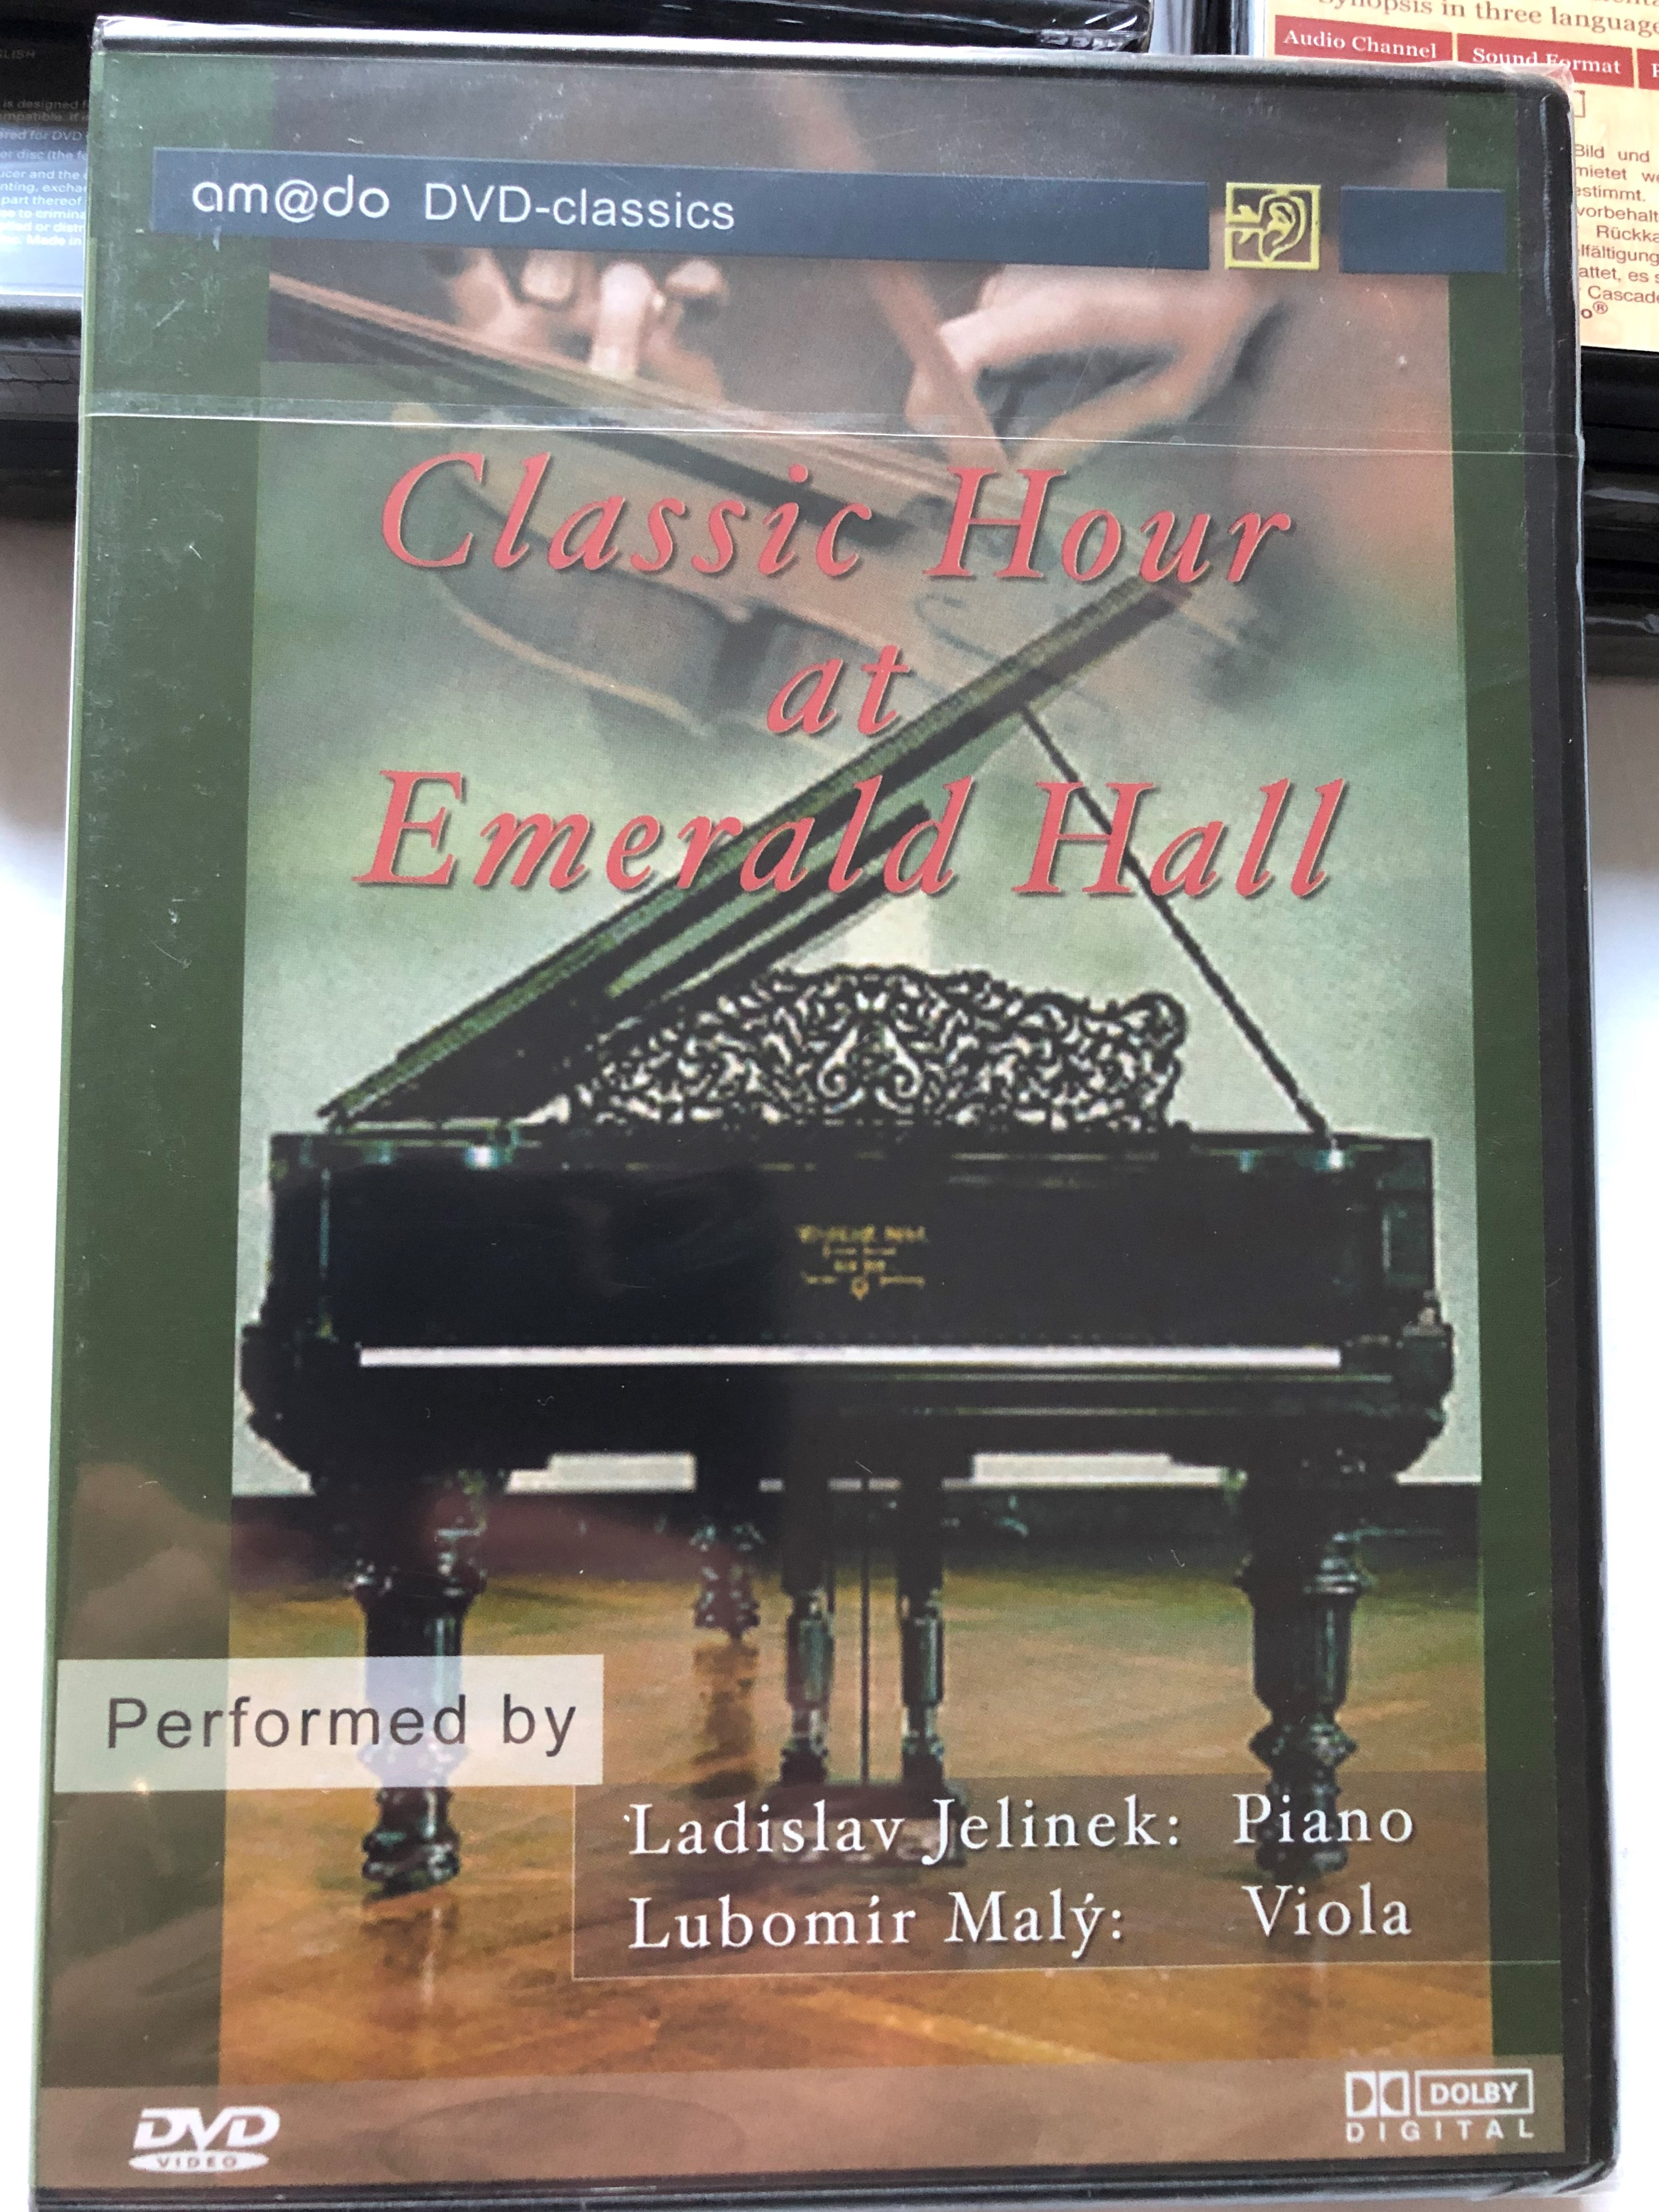 classic-hour-at-emerald-hall-dvd-2002-performed-by-ladislav-jelinek-piano-lubomir-maly-viola-michel-corrette-l.-van-beethoven-j.-brahms-paganini-schubeert-camille-saint-saens-amado-classics-1-.jpg